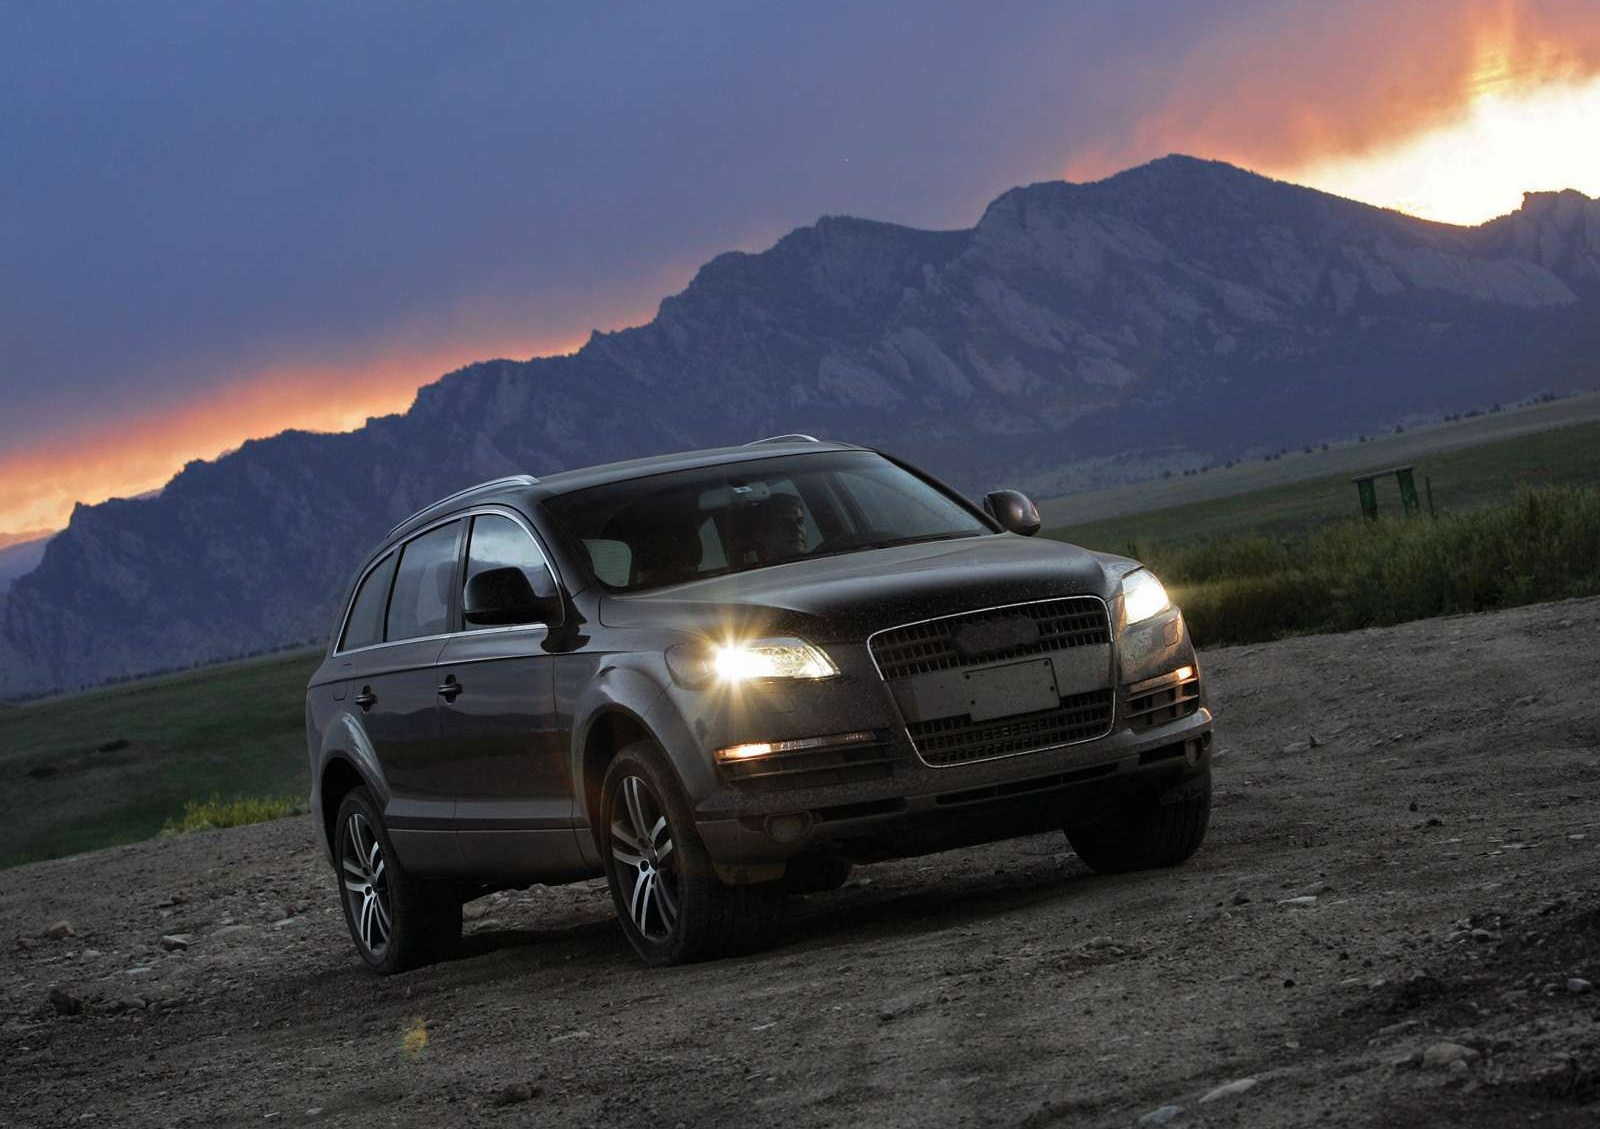 Audi Q7 Wallpapers Tops Wallpapers Gallery